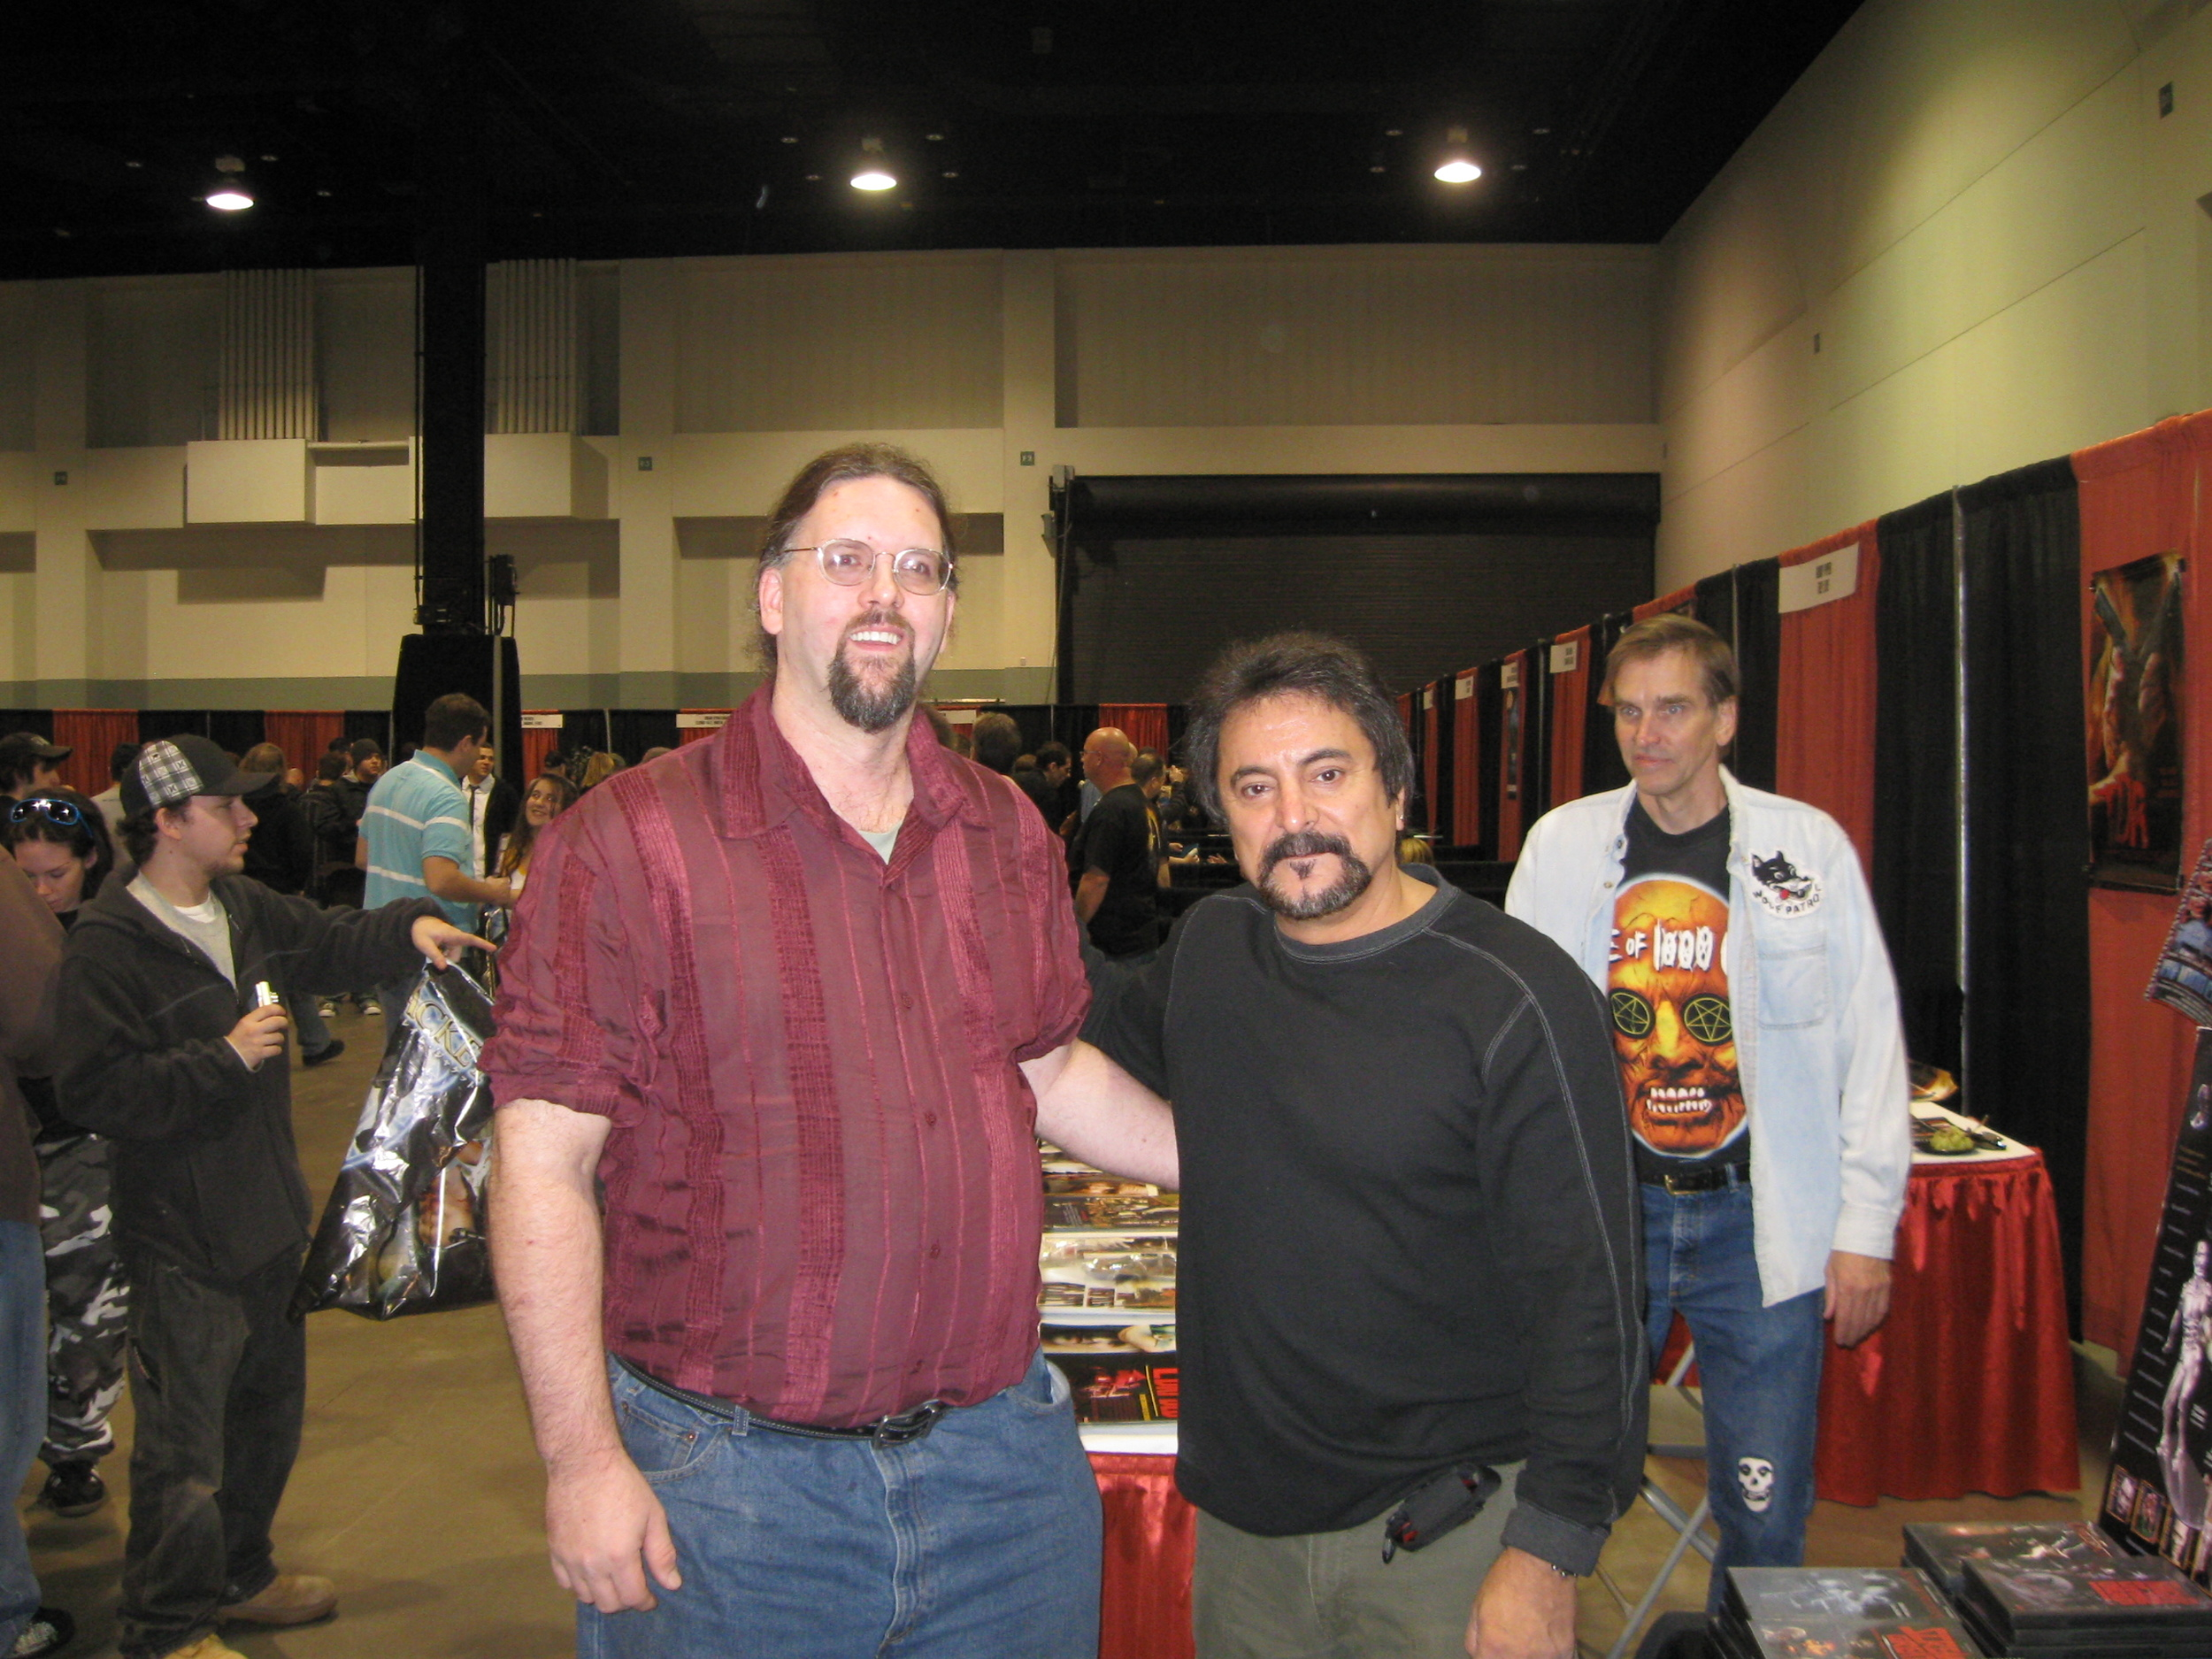 Tom Savini, Bill Moseley.JPG